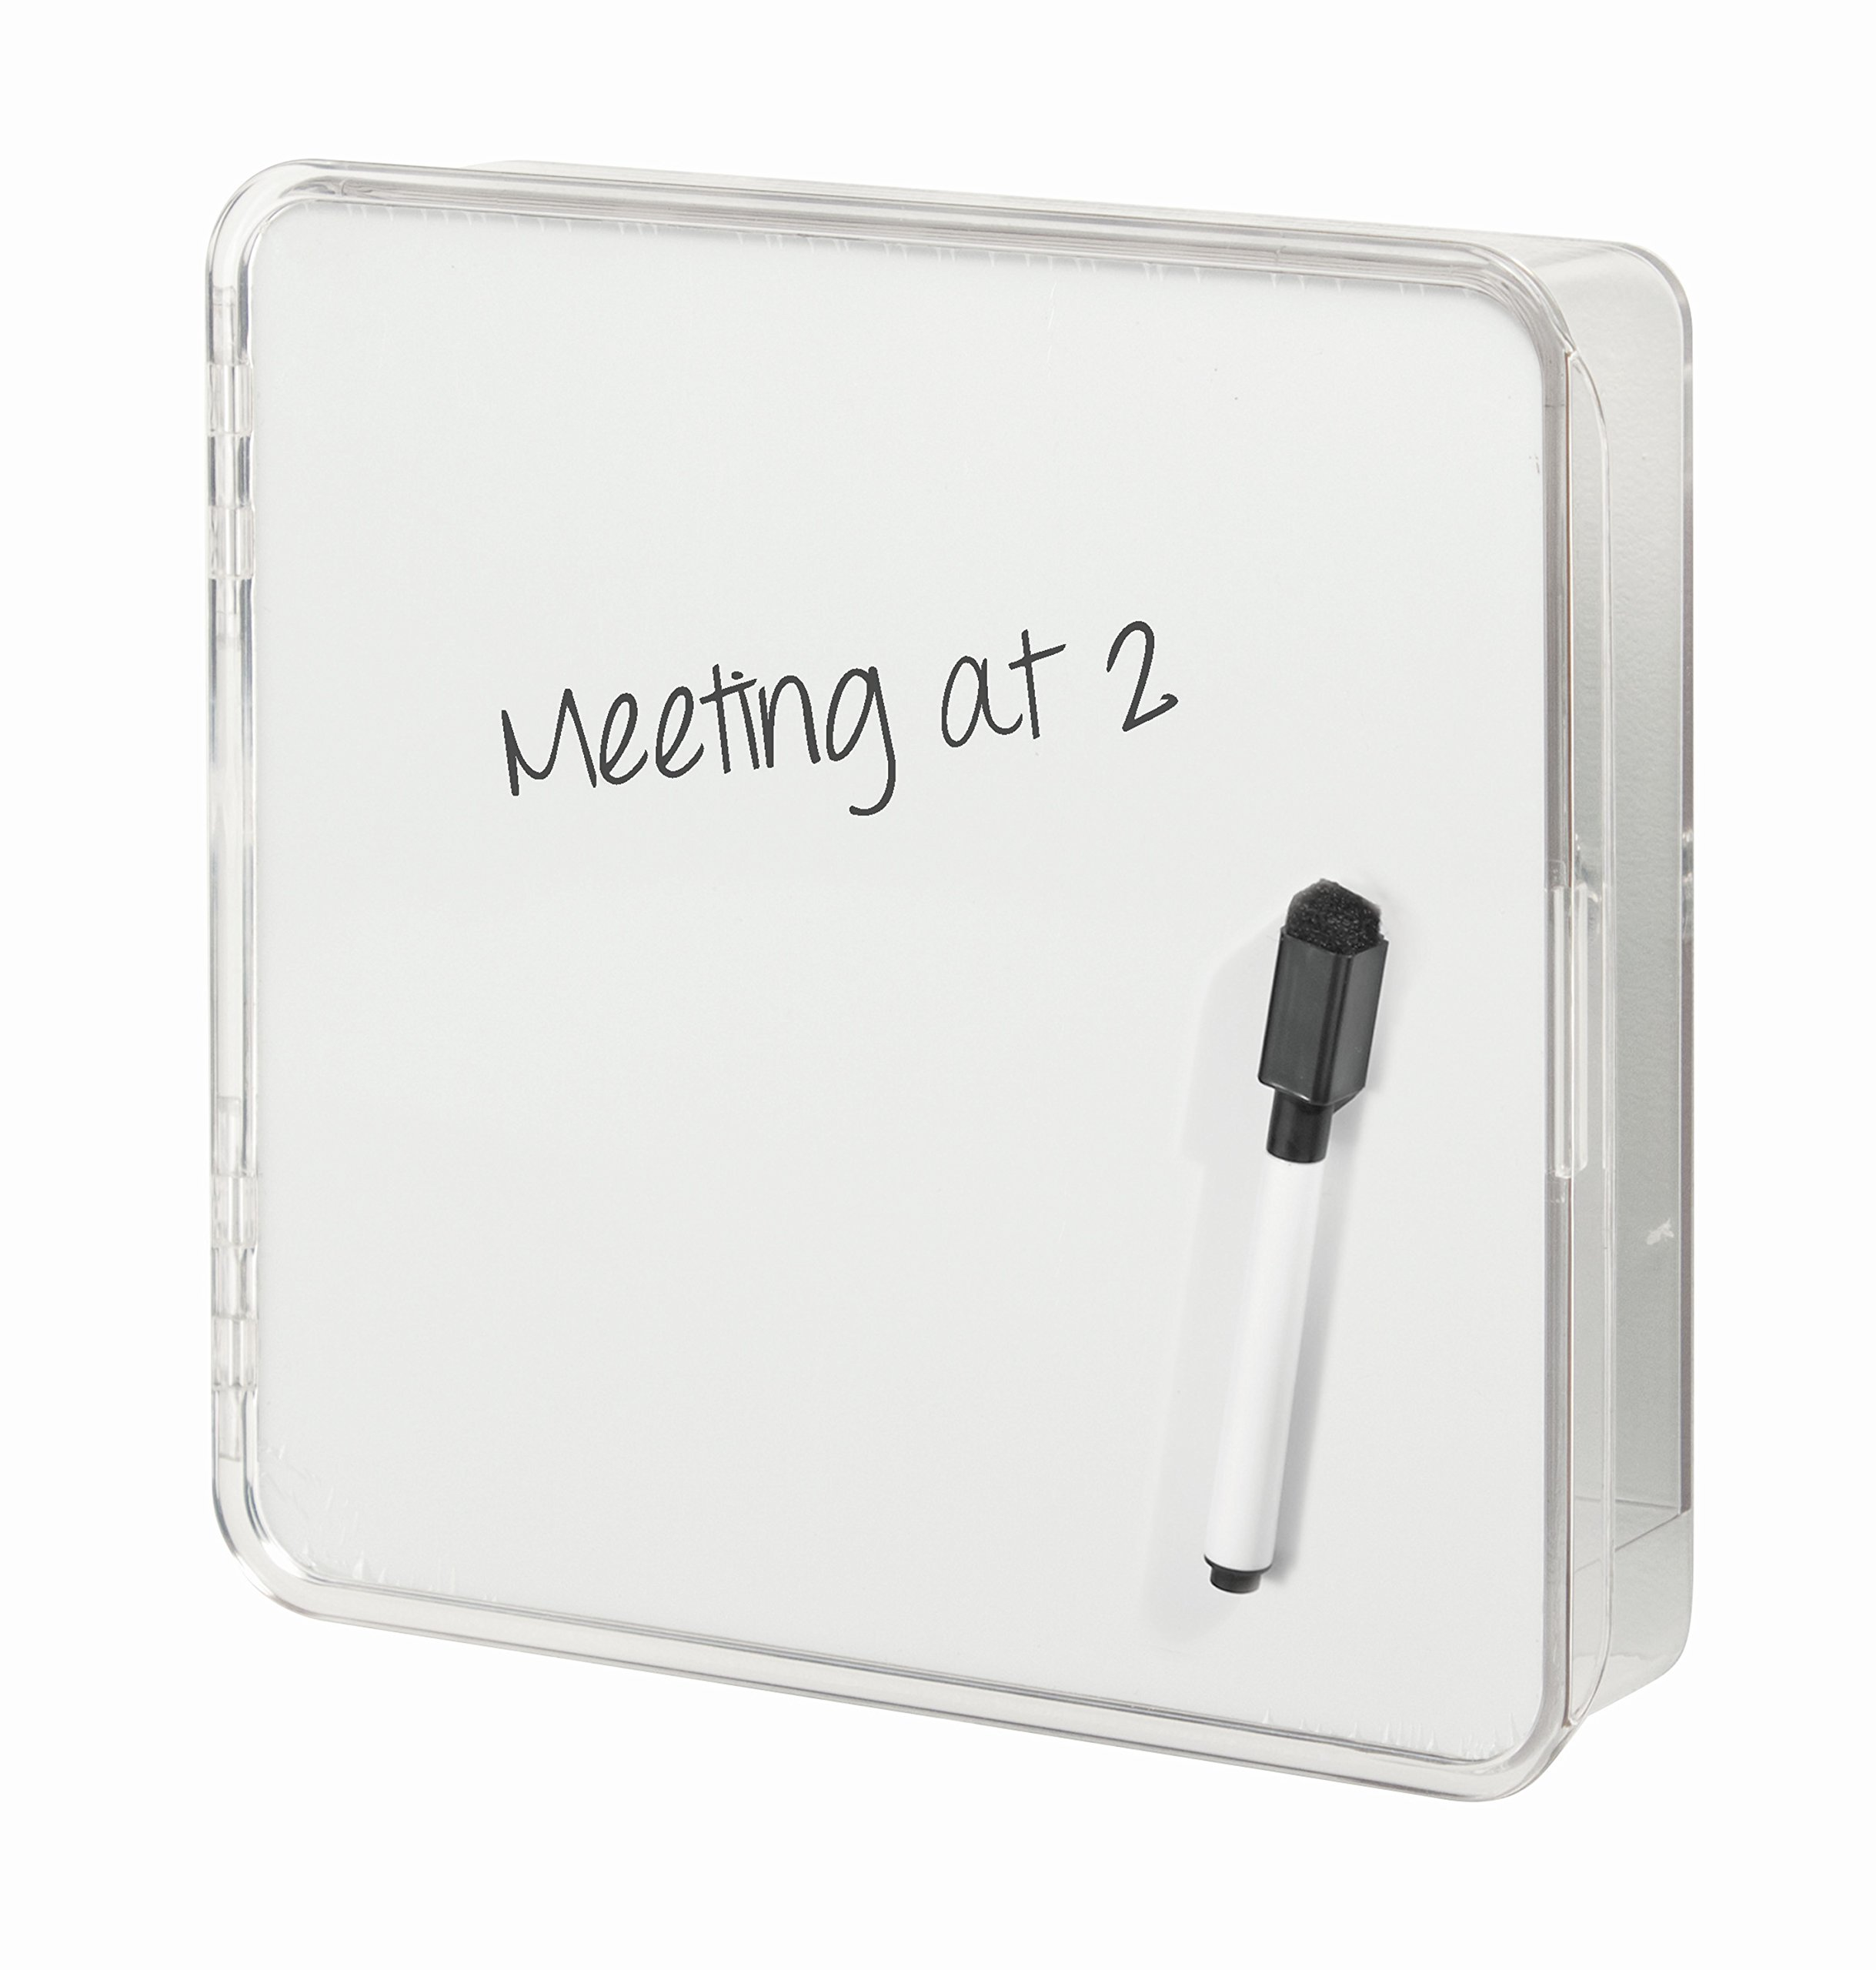 InterDesign Linus Entryway Wall Mount Key Holder and Dry Erase Board – Storage Organizer for Hallway or Entryway, Clear/White